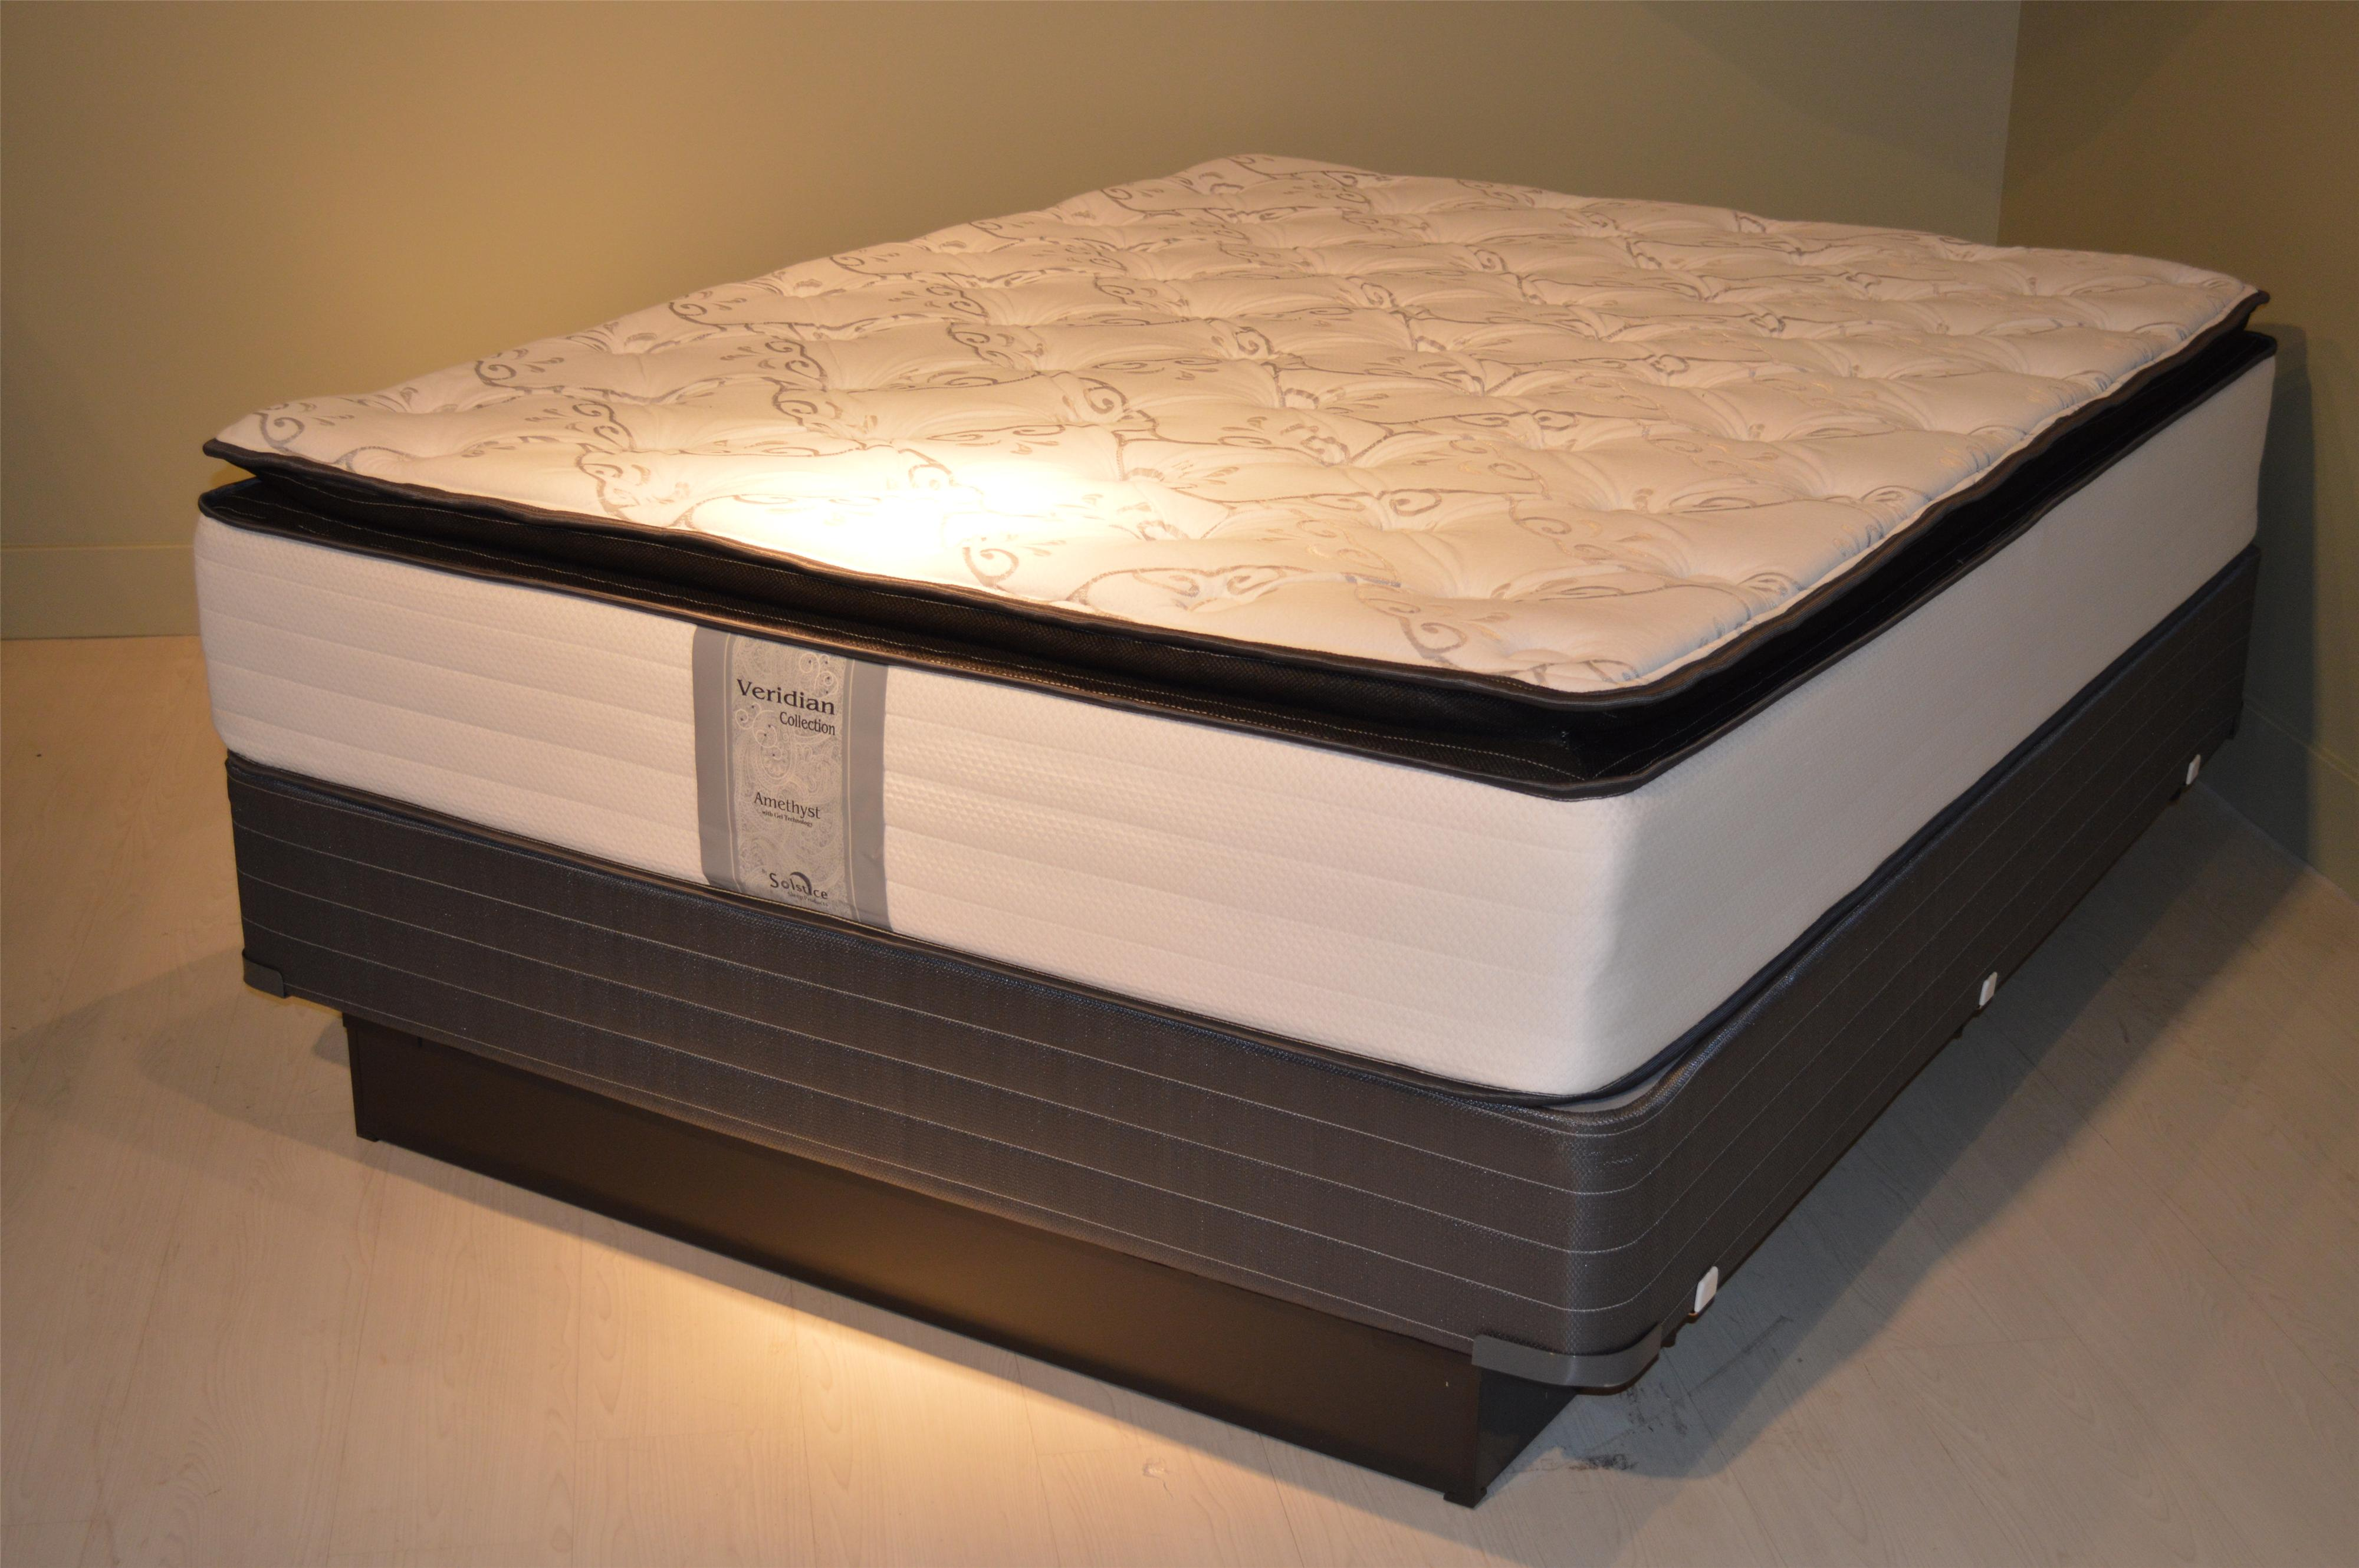 solstice sleep products amethyst pillowtop amethyst pillowtop mattress item number amethystptf - Jamison Mattress